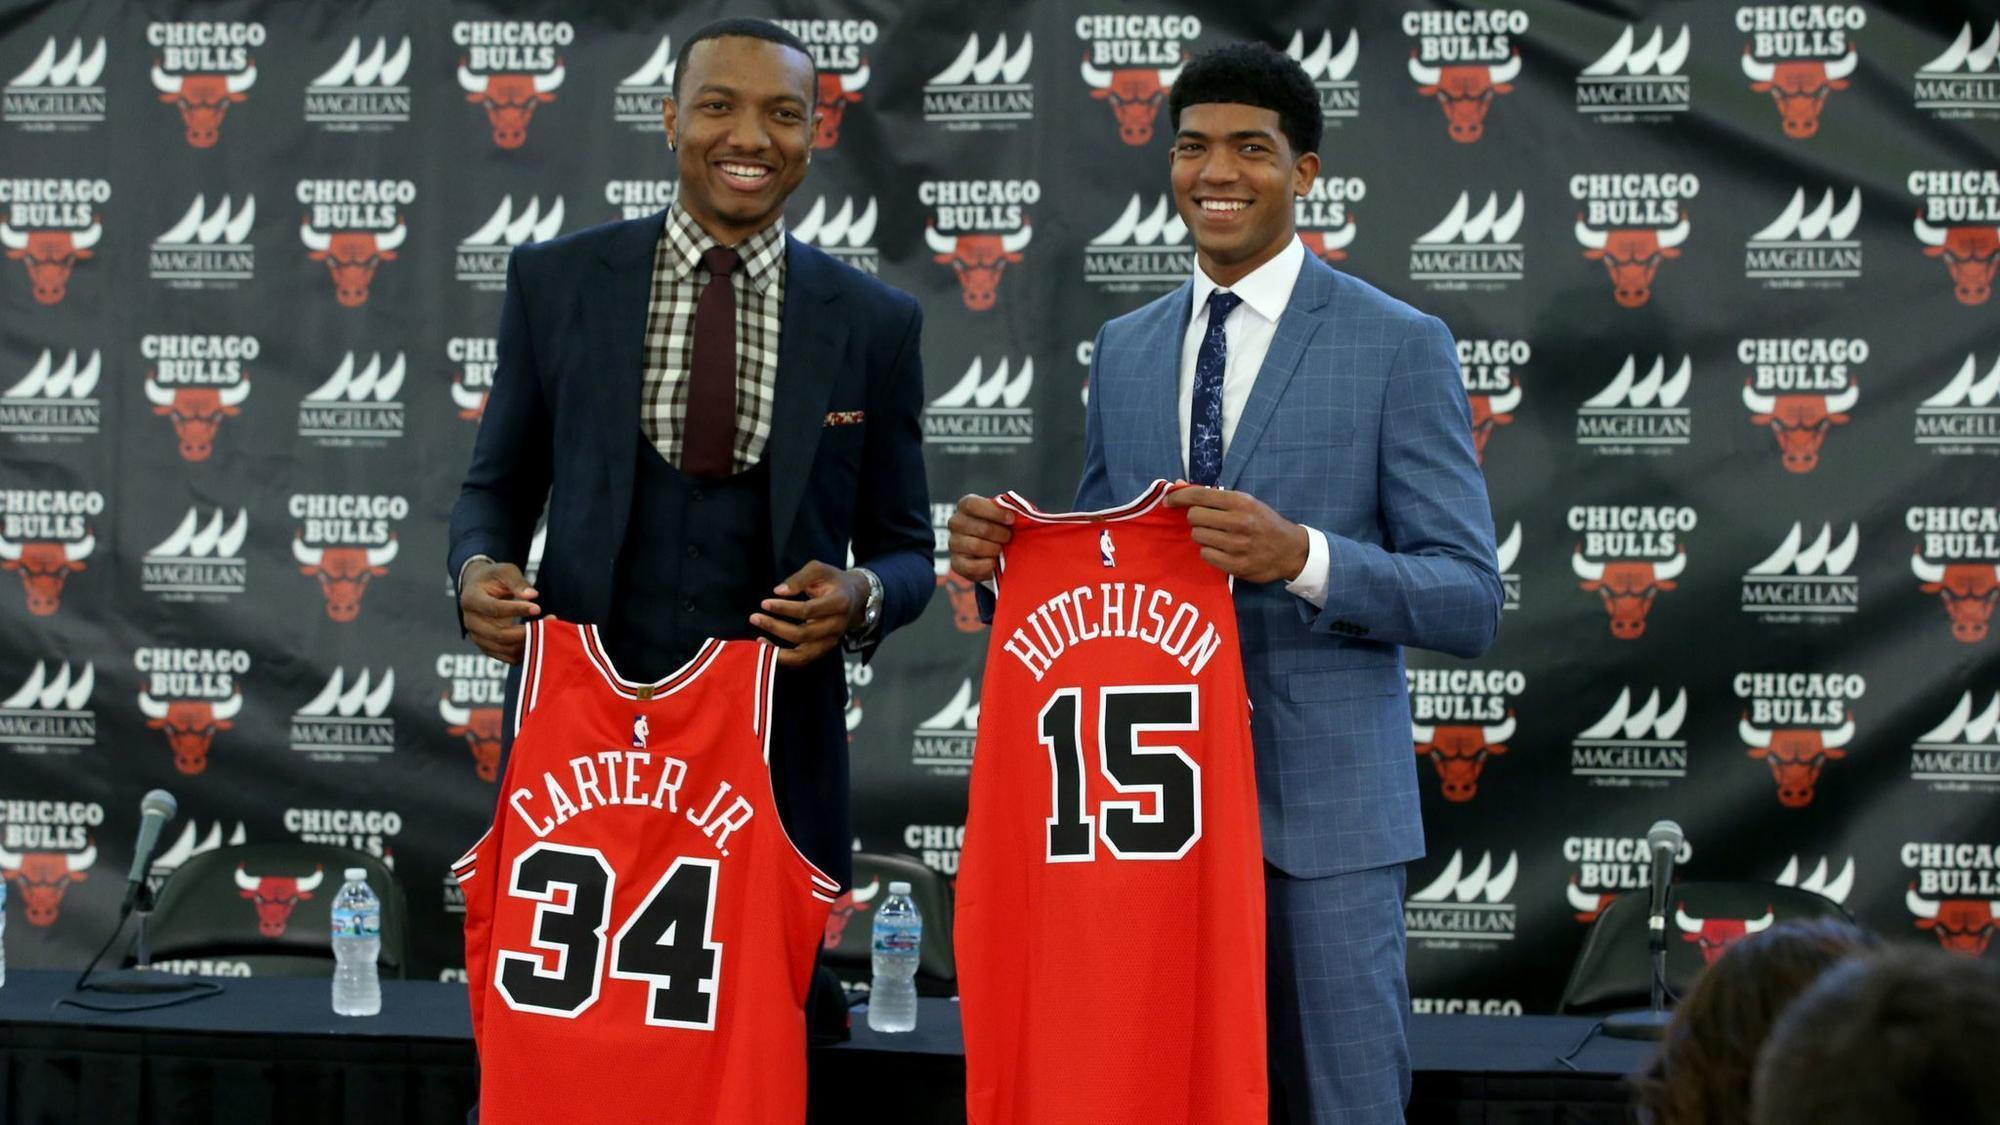 Bulls  additions of Wendell Carter Jr. and Chandler Hutchison fit coach  Fred Hoiberg s philosophy - Chicago Tribune 6ee71cdda